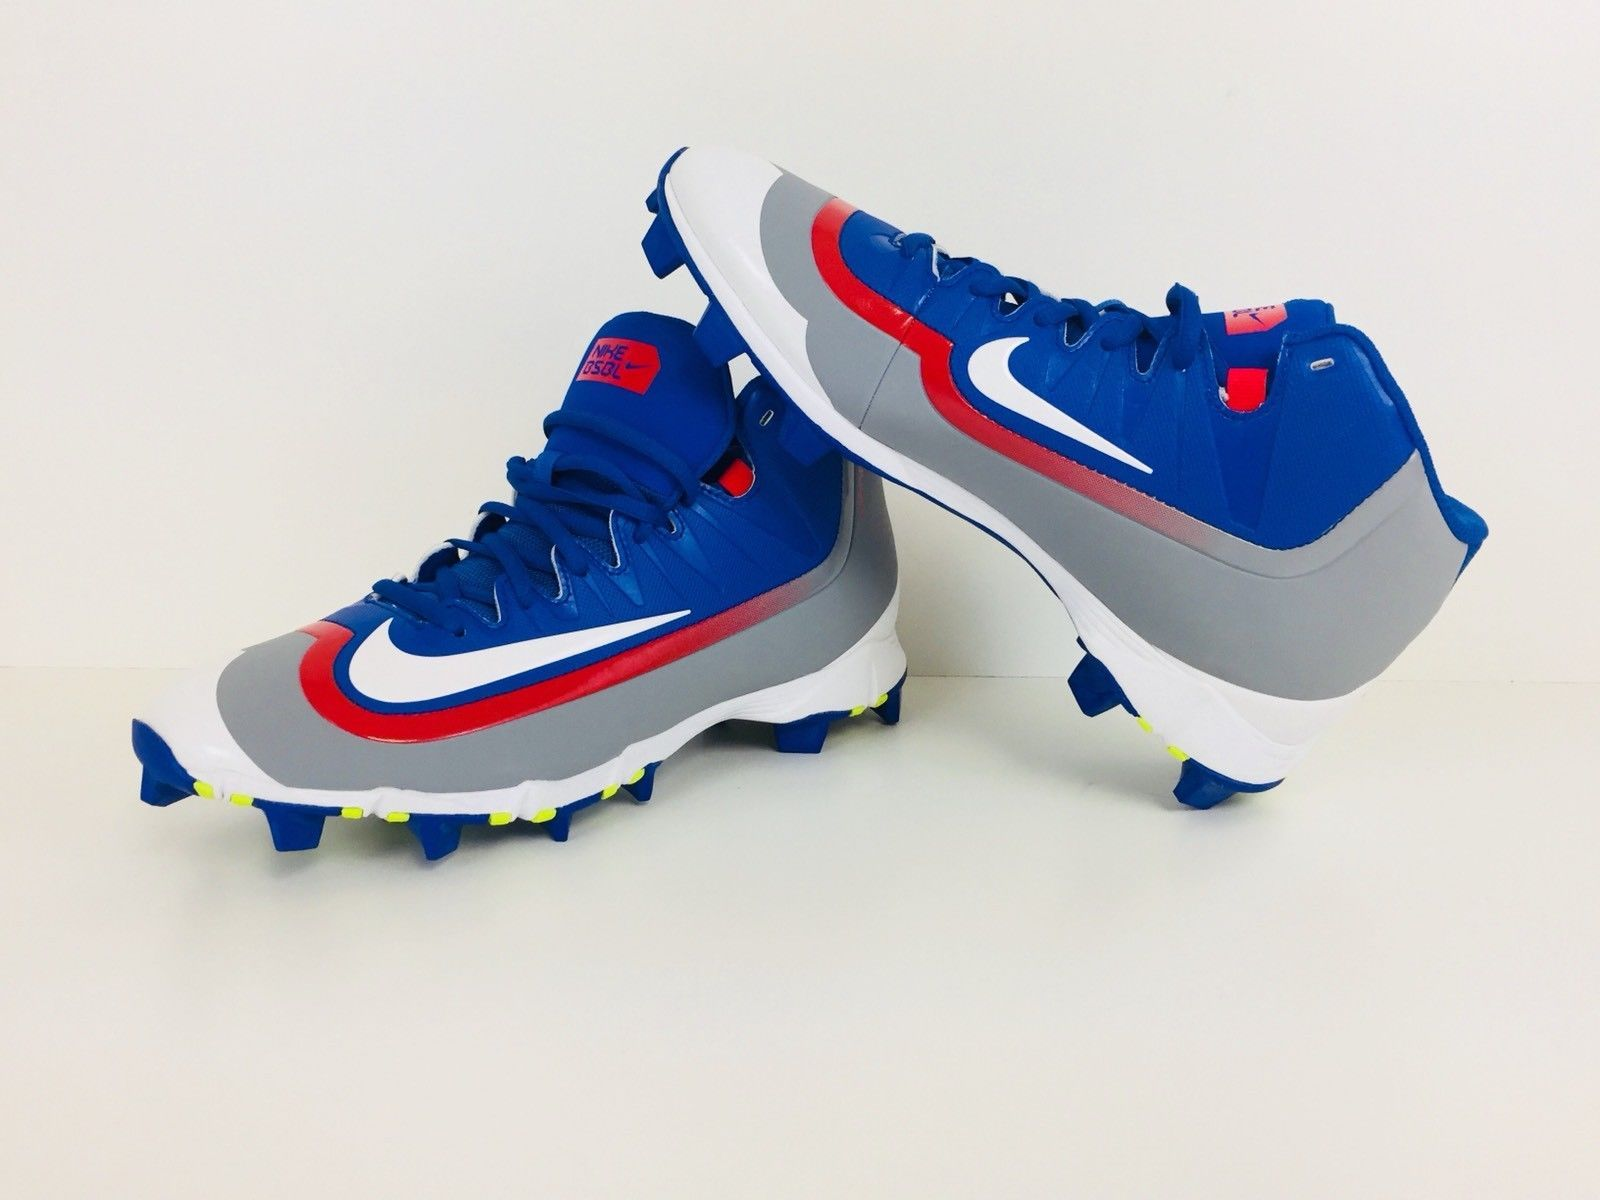 d360e812034998 S l1600. S l1600. Previous. NIKE HUARACHE 2K FILTH KEYSTONE MID BASEBALL  CLEAT SIZE 9 Men s ...